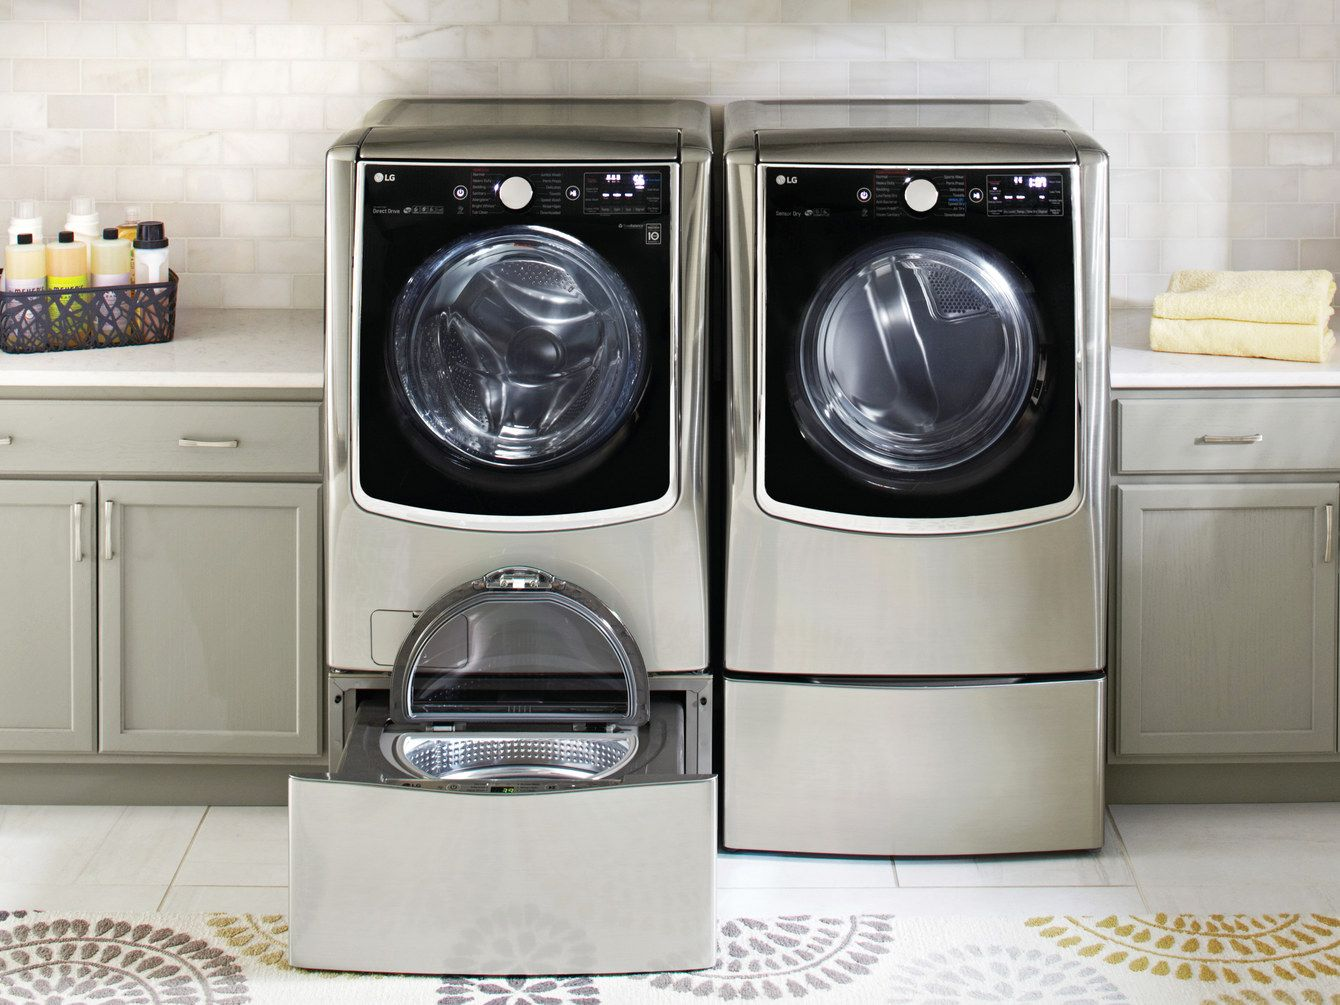 A Multitasking Washing Machine Can Handle Two Separate Loads At